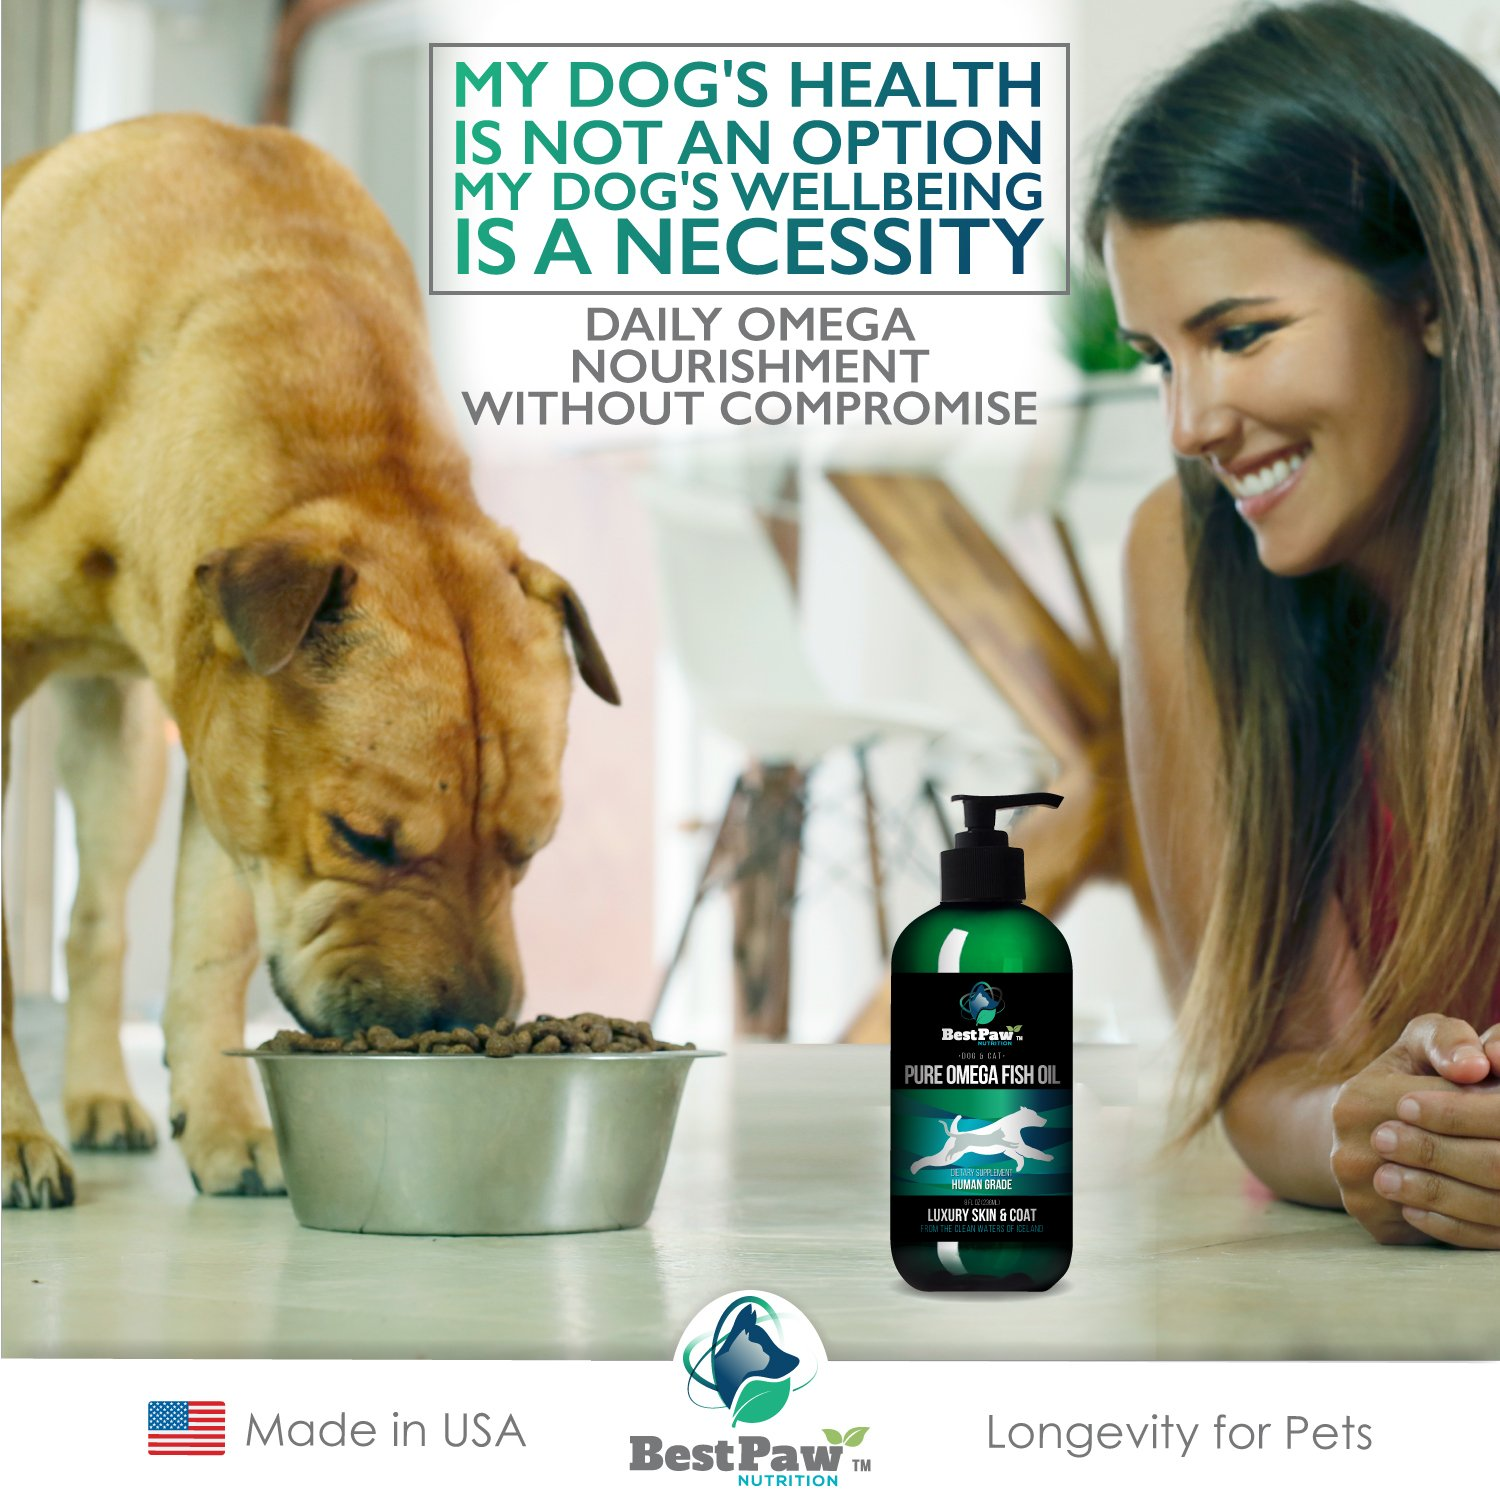 Fish Oil Omega 3 for Dogs, Cats, and Horses, Salmon Oil Food Supplement for Pets, Wild Alaskan 100% All Natural, Helps Dry Skin, Allergies, and Joints, Promotes Healthy Coat, Helps Inflammation, 8 oz by Pure Paw Nutrition (Image #4)